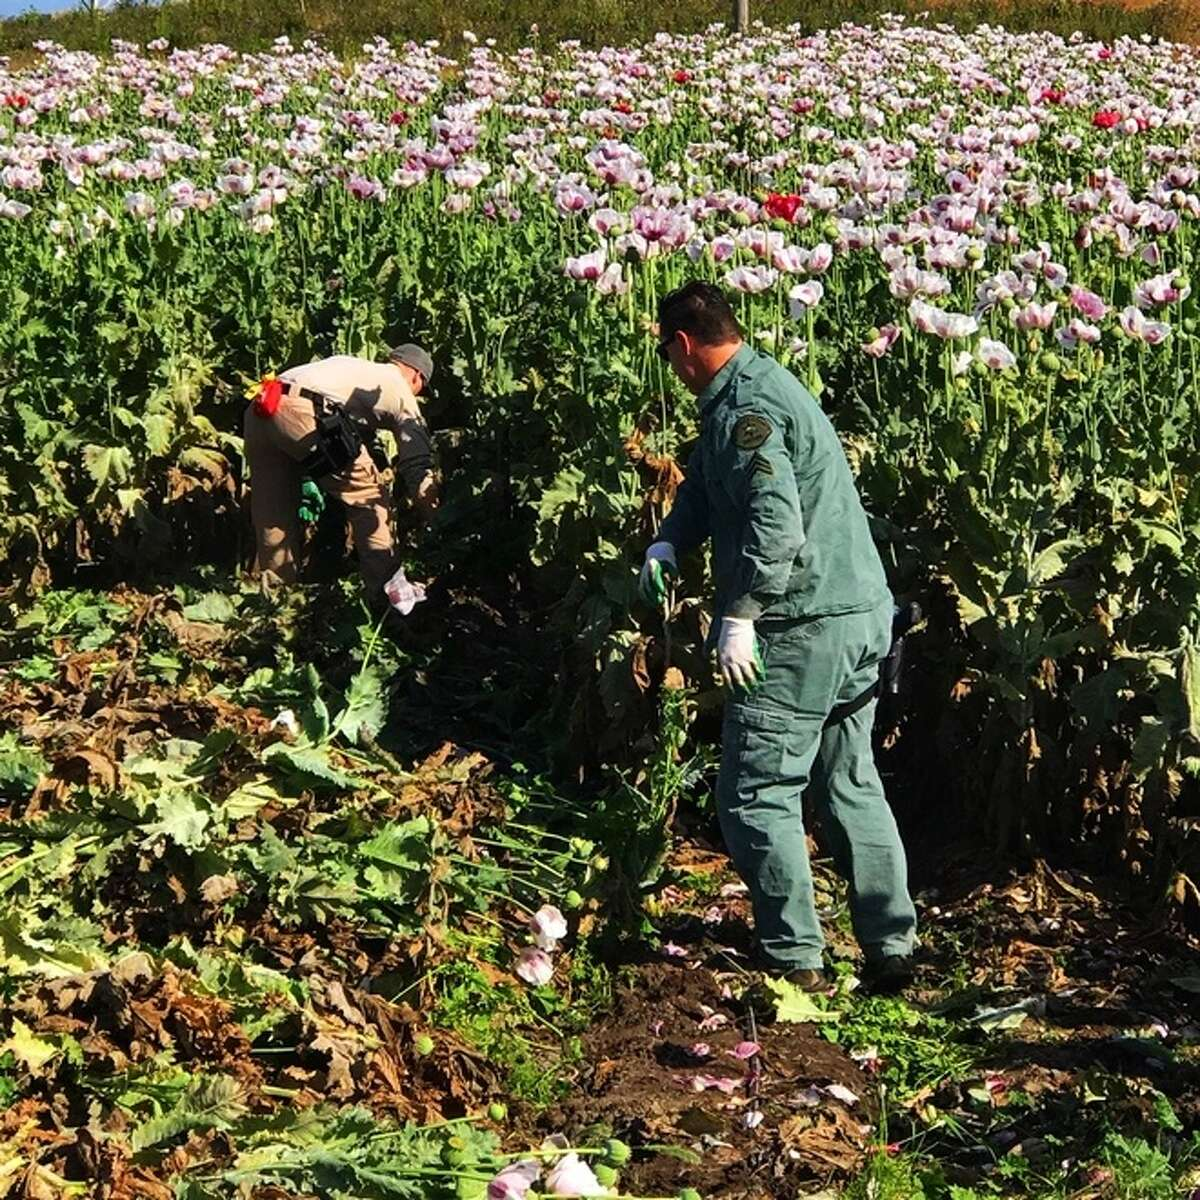 A giant opium poppy field in Moss Landing was found and destroyed by Monterey County Sheriff's deputies, investigators said Monday.